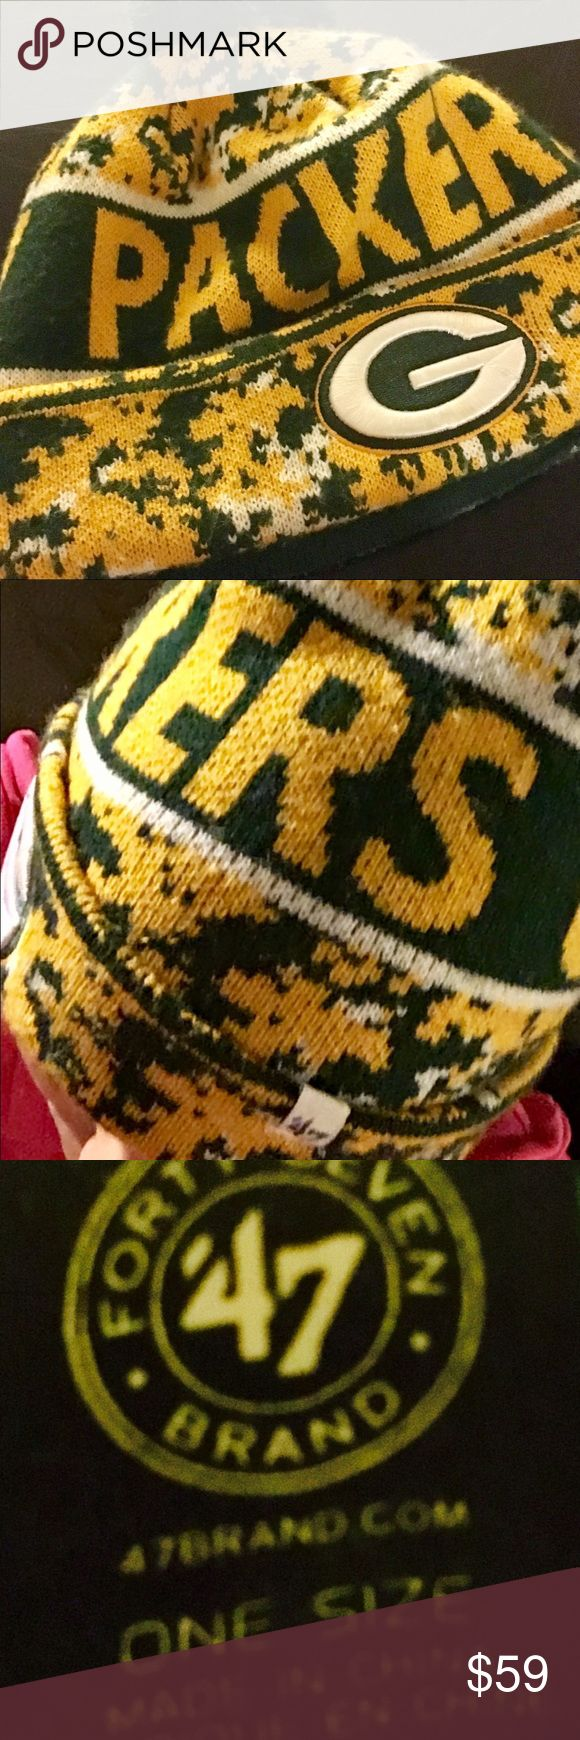 NFL GREEN BAY PACKERS FANS GREEN BAY PACKERS AUTHENTIC HAT Accessories Hats